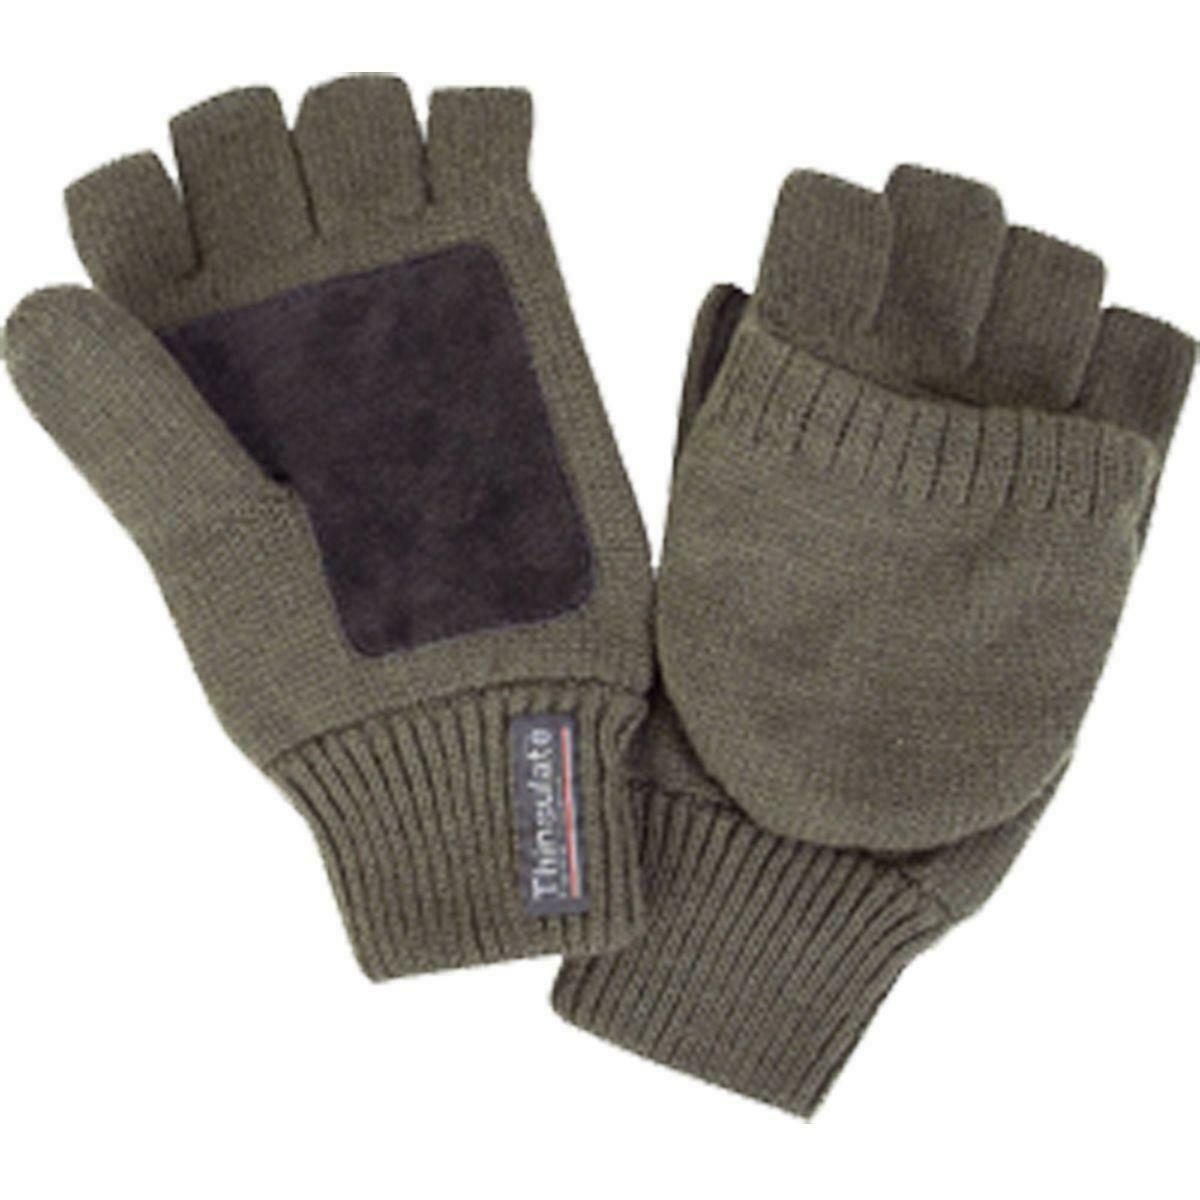 Bisley Thinsulate Shooter's Mitts Green Men's